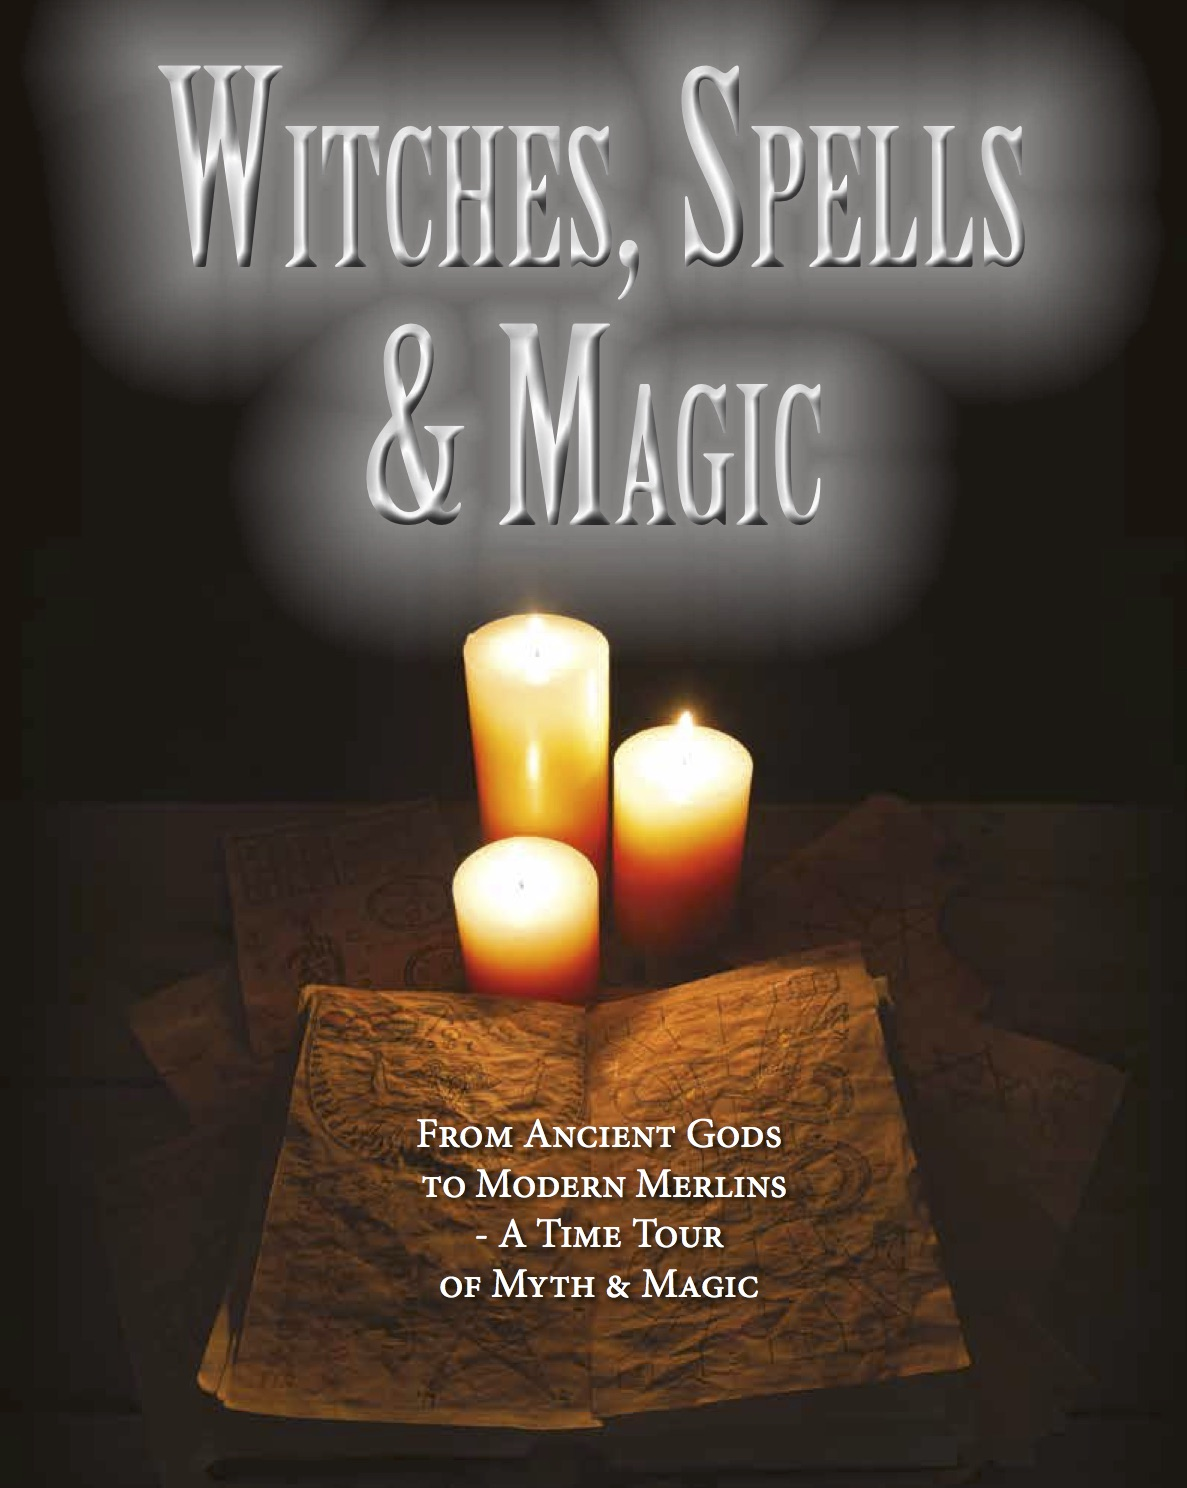 Witches, Spells & Magic